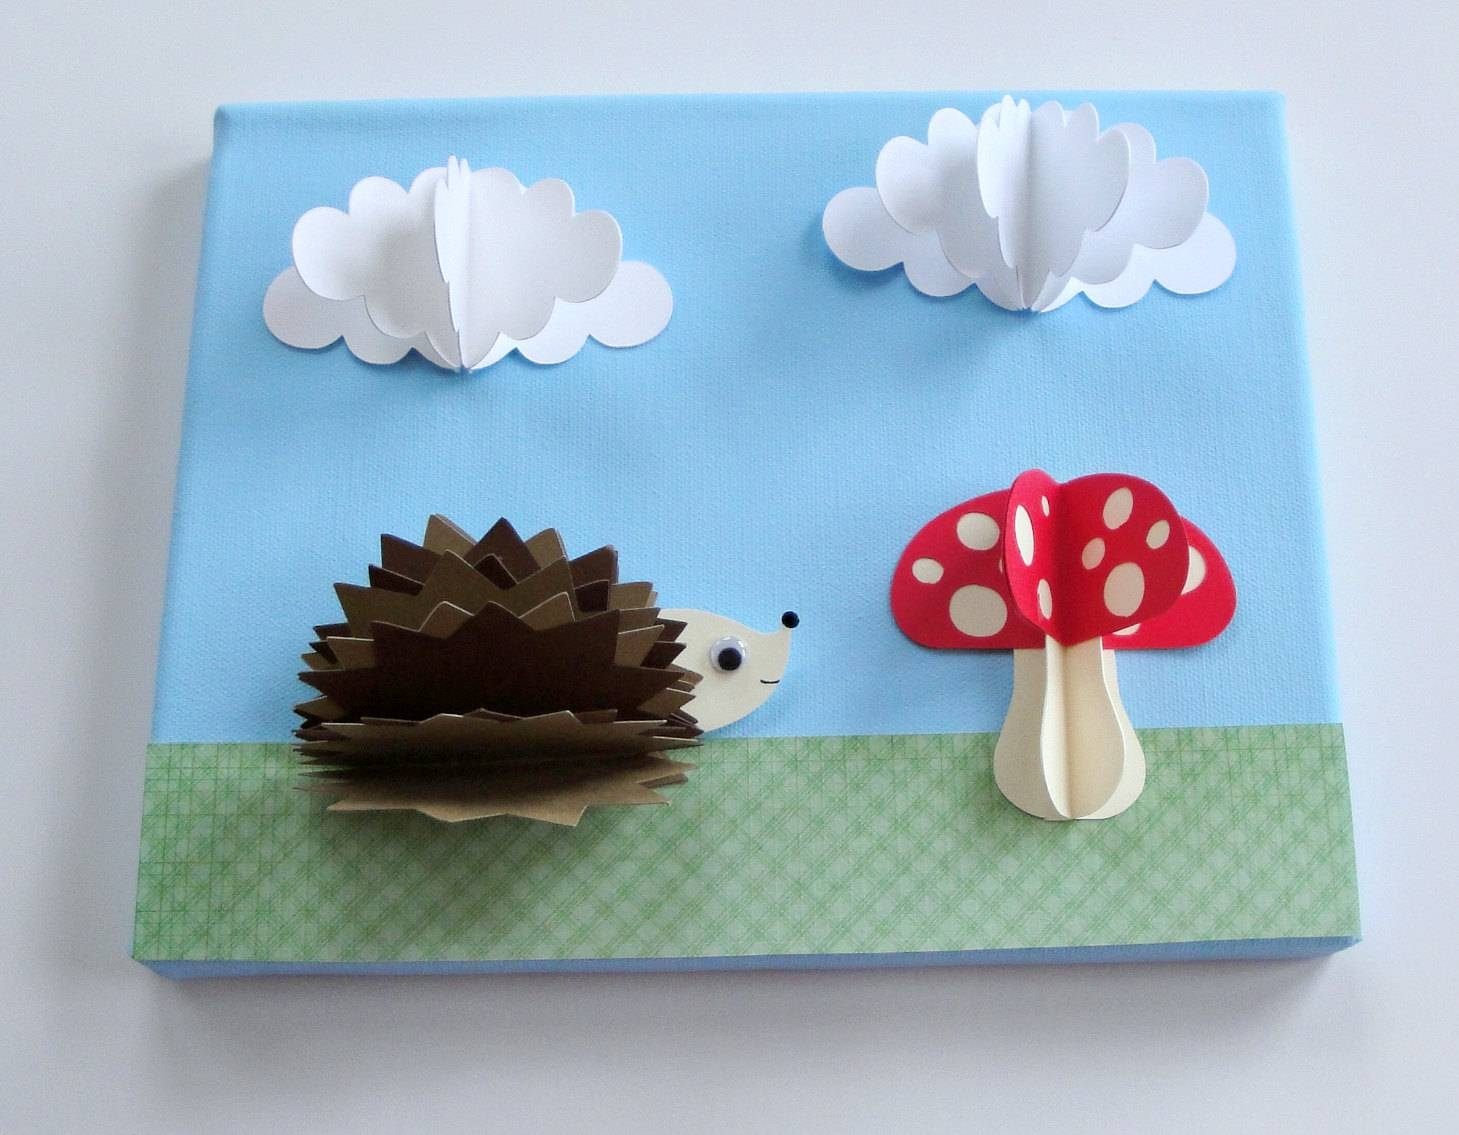 Original Hedgehog And Mushroompaper Wall Art On Canvas Including Intended For Current 3D Paper Wall Art (View 17 of 25)